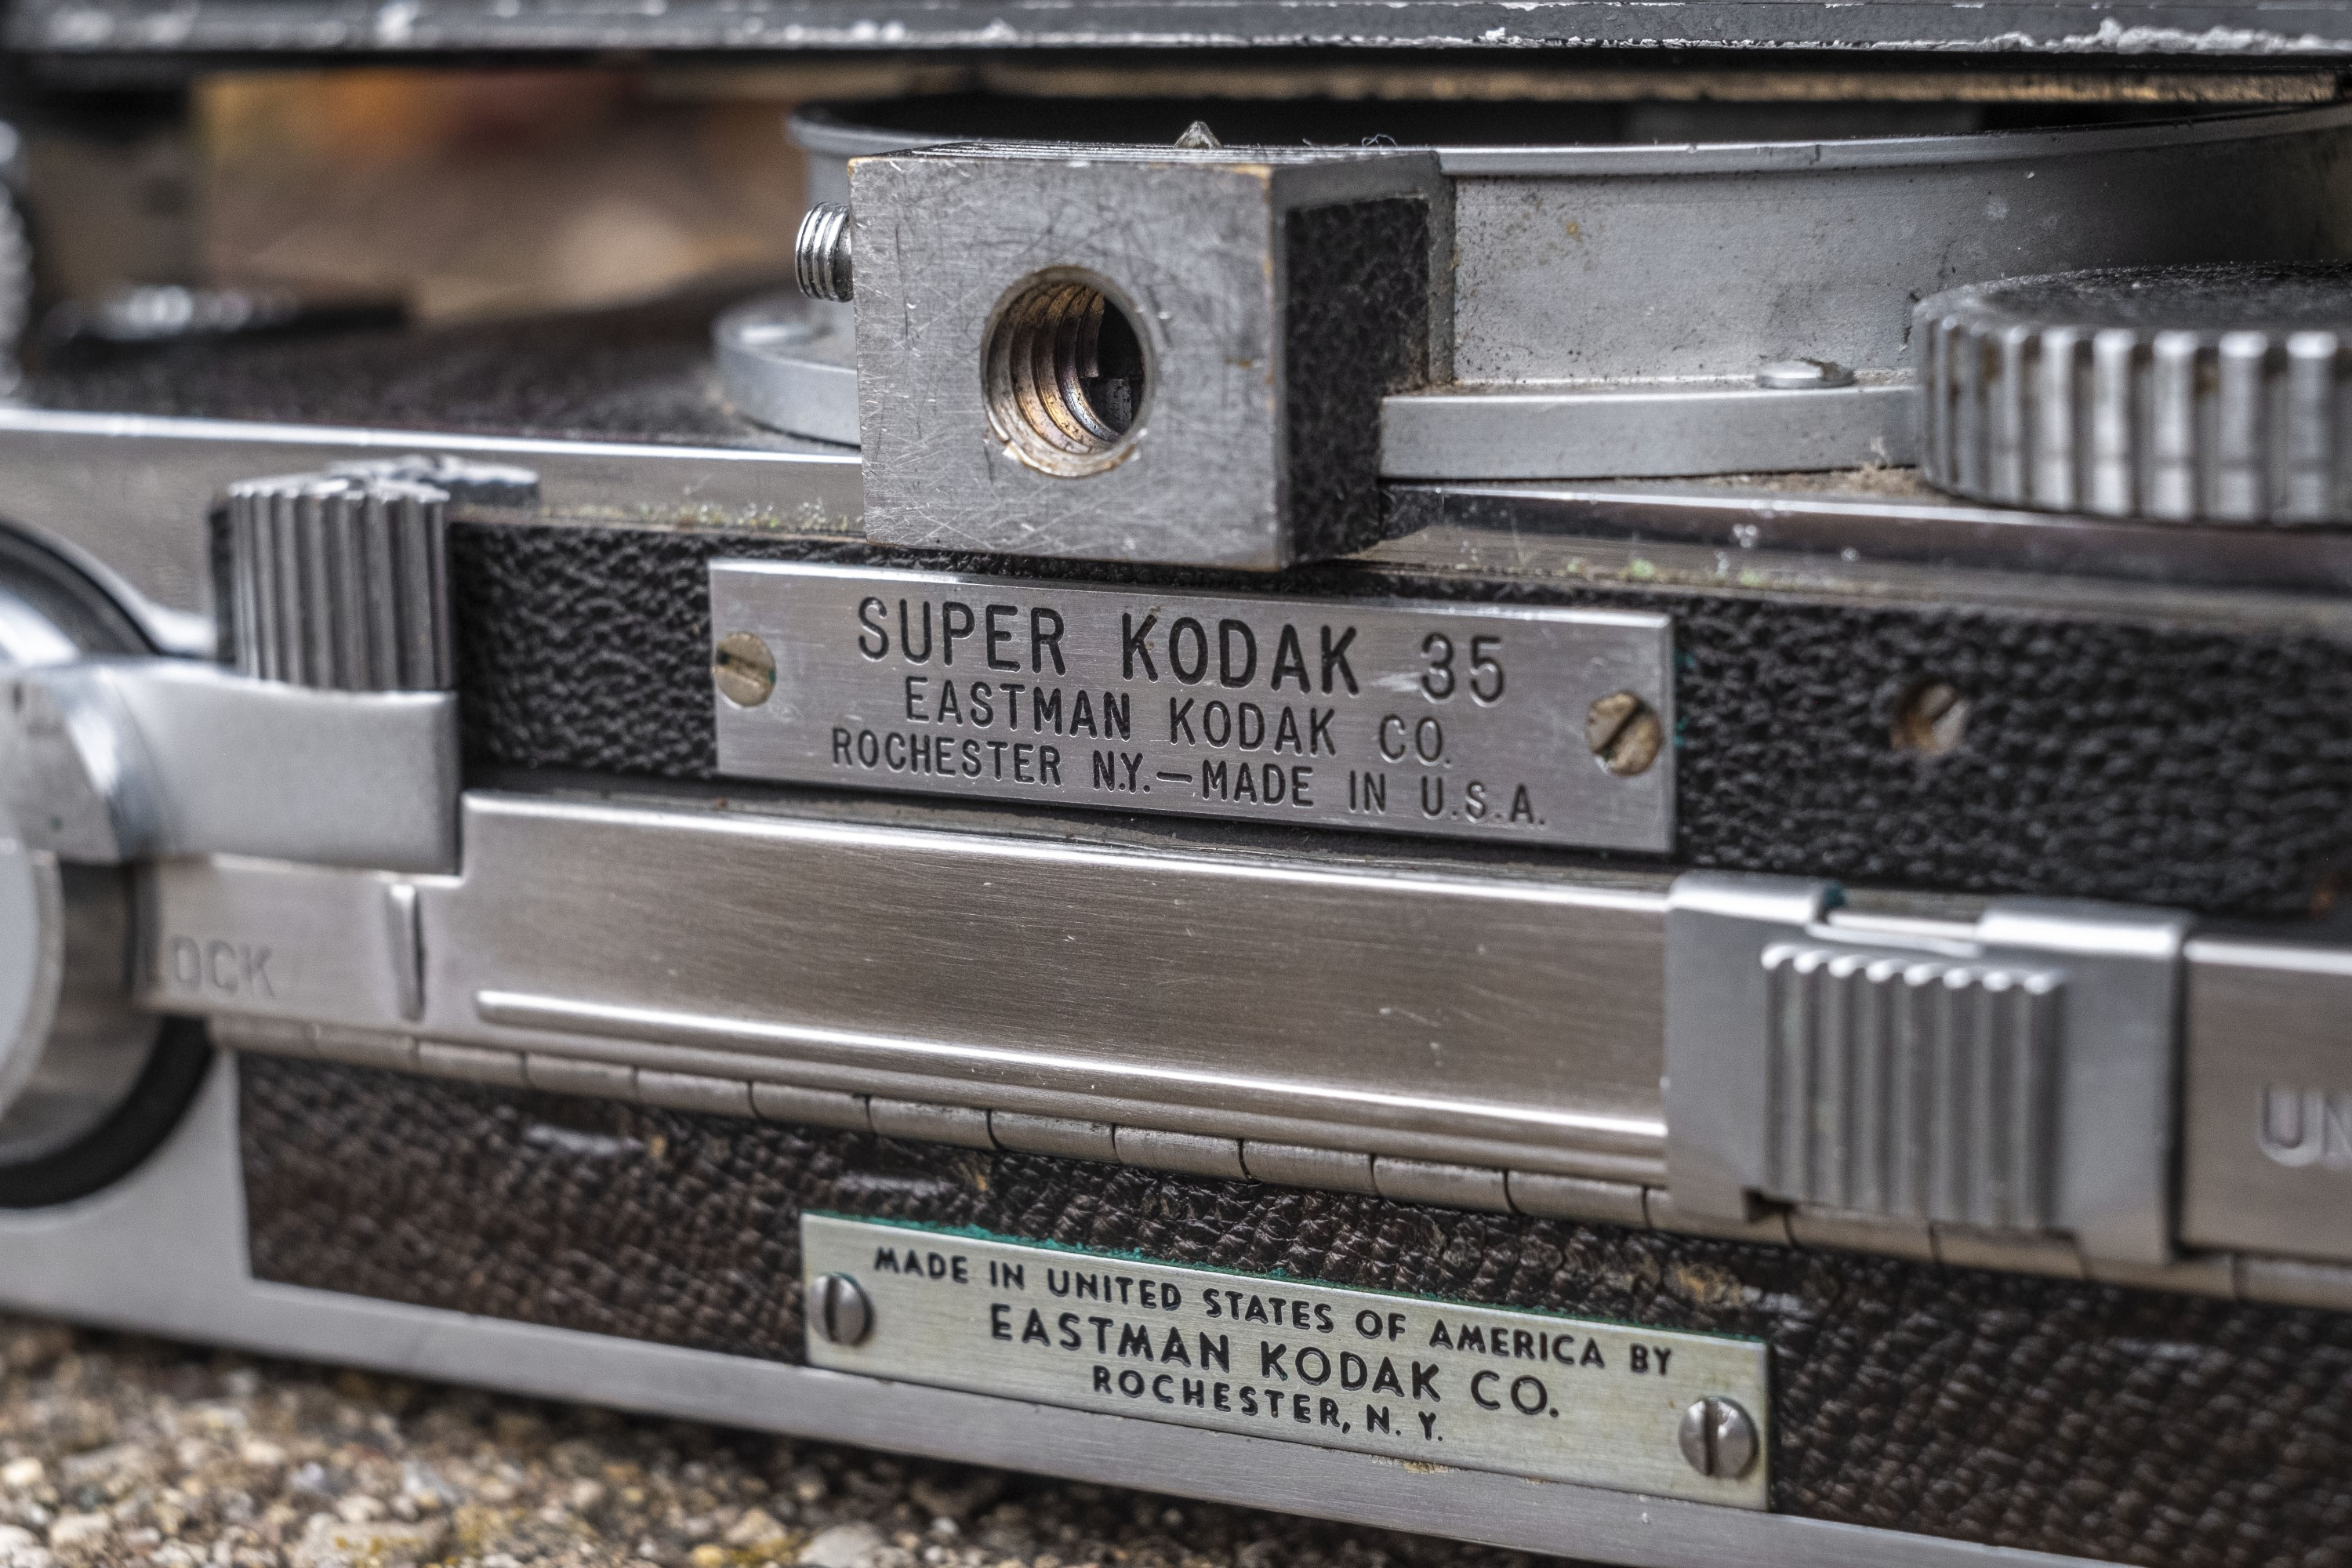 Super Kodak 35 Prototypes